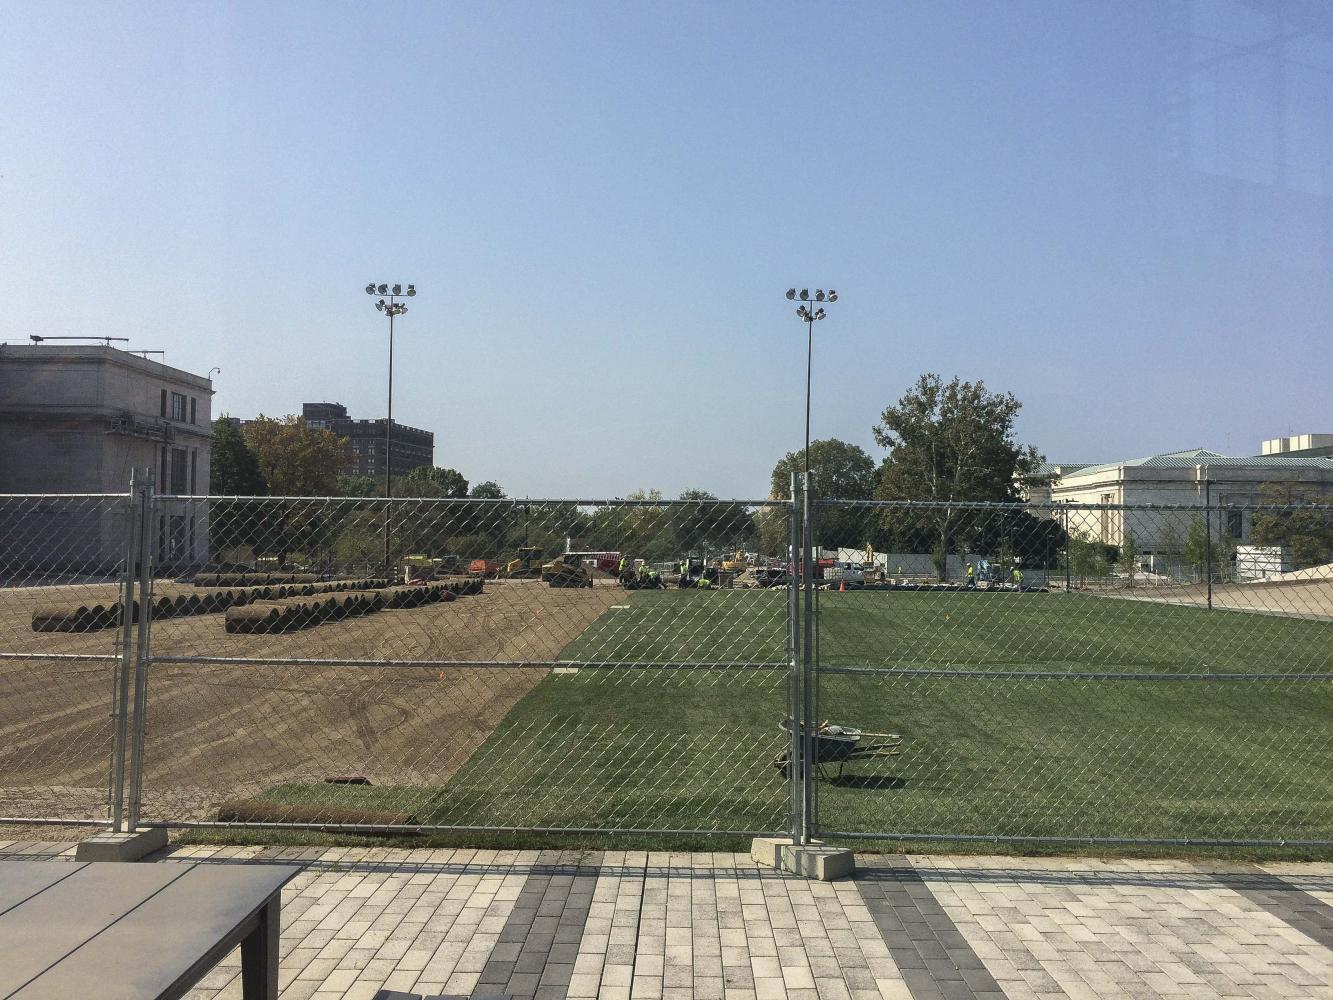 The Nord Greenway project is beginning to look a bit more green with the installation of sod on Frieberger Field. The project is expected to be completed in 2019.